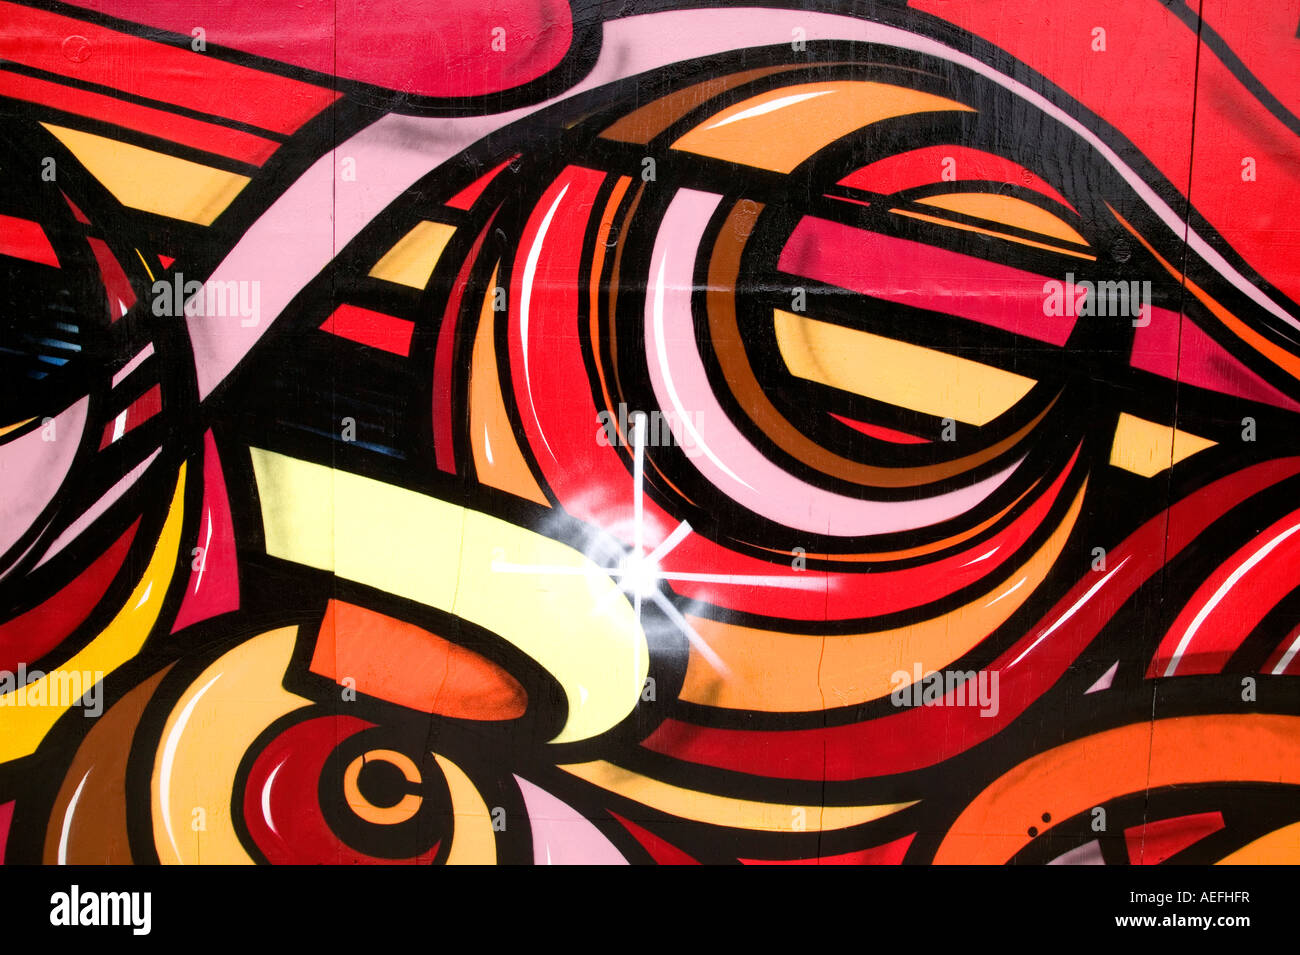 Colourful graffiti image sprayed on a wooden wall - Stock Image